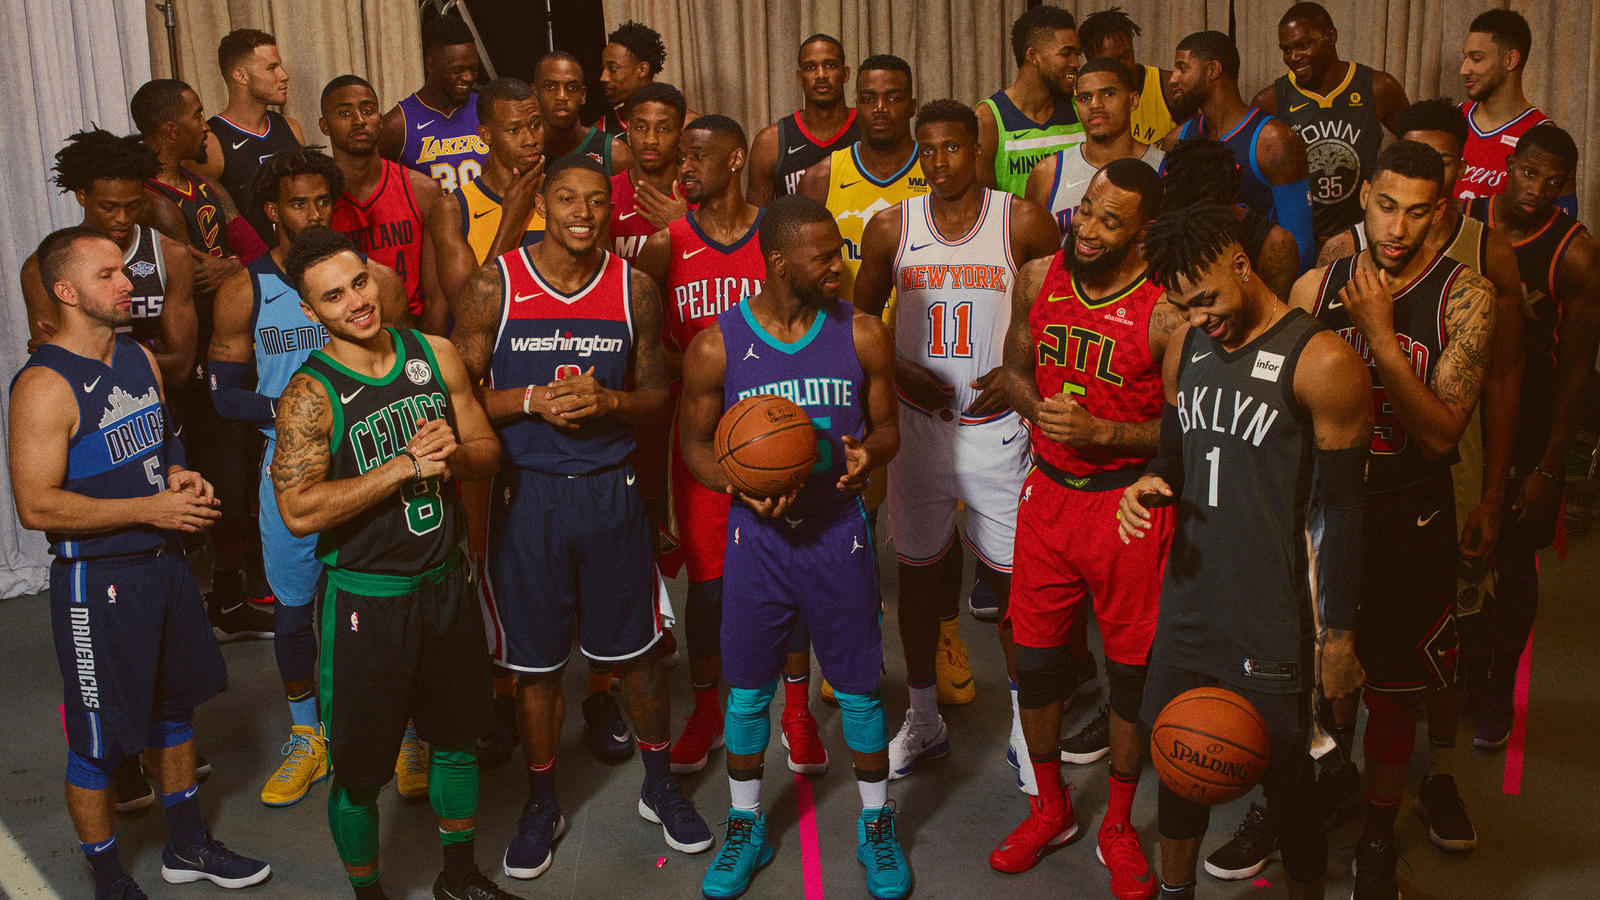 8471c4b50 Here Are All of Nike s NBA Statement Edition Uniforms - Nike News